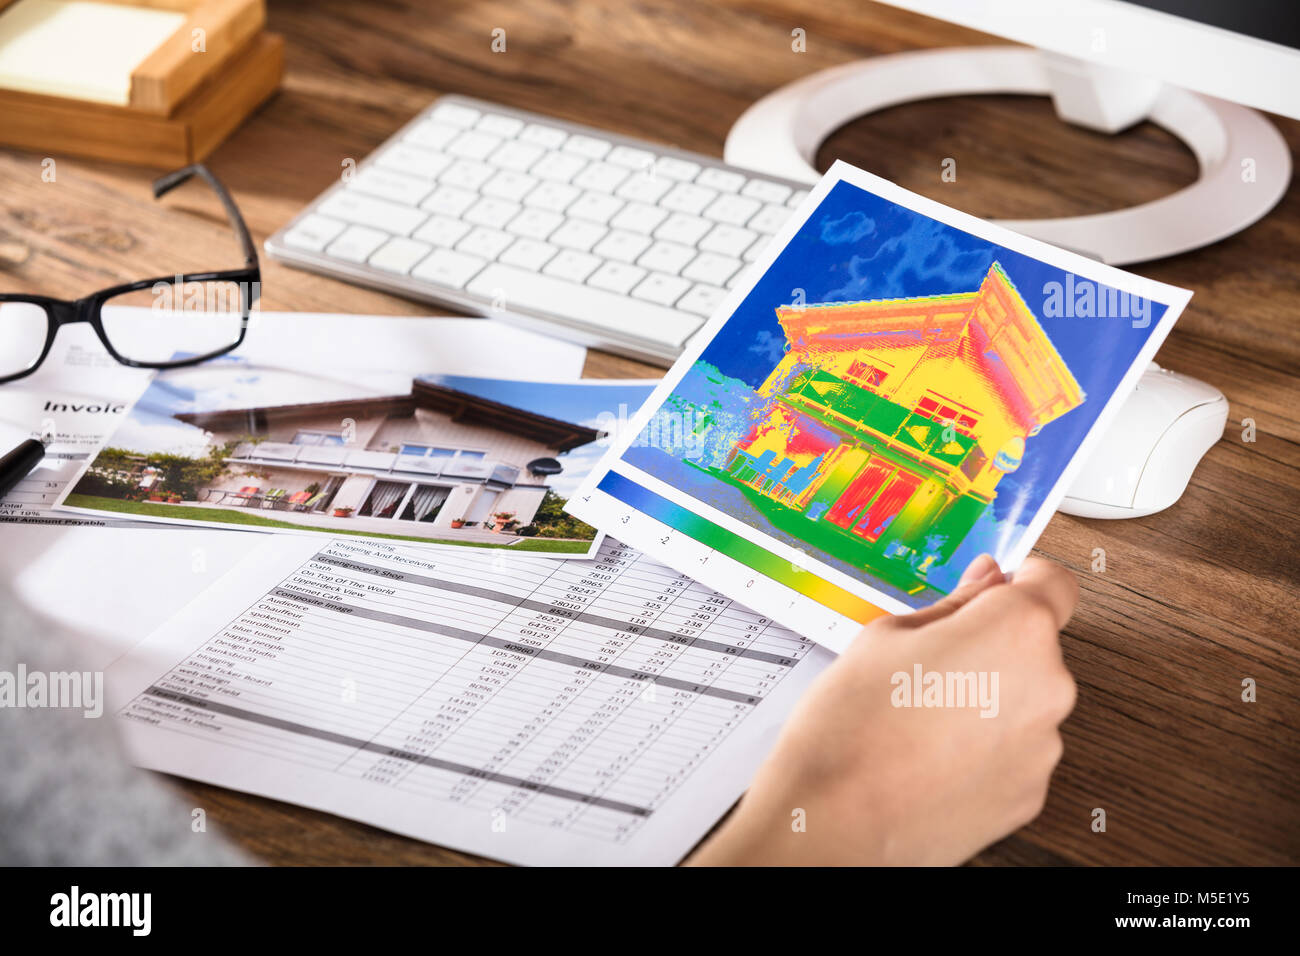 Close-up Of A Person Analyzing The Thermal Image Of A House On Desk - Stock Image